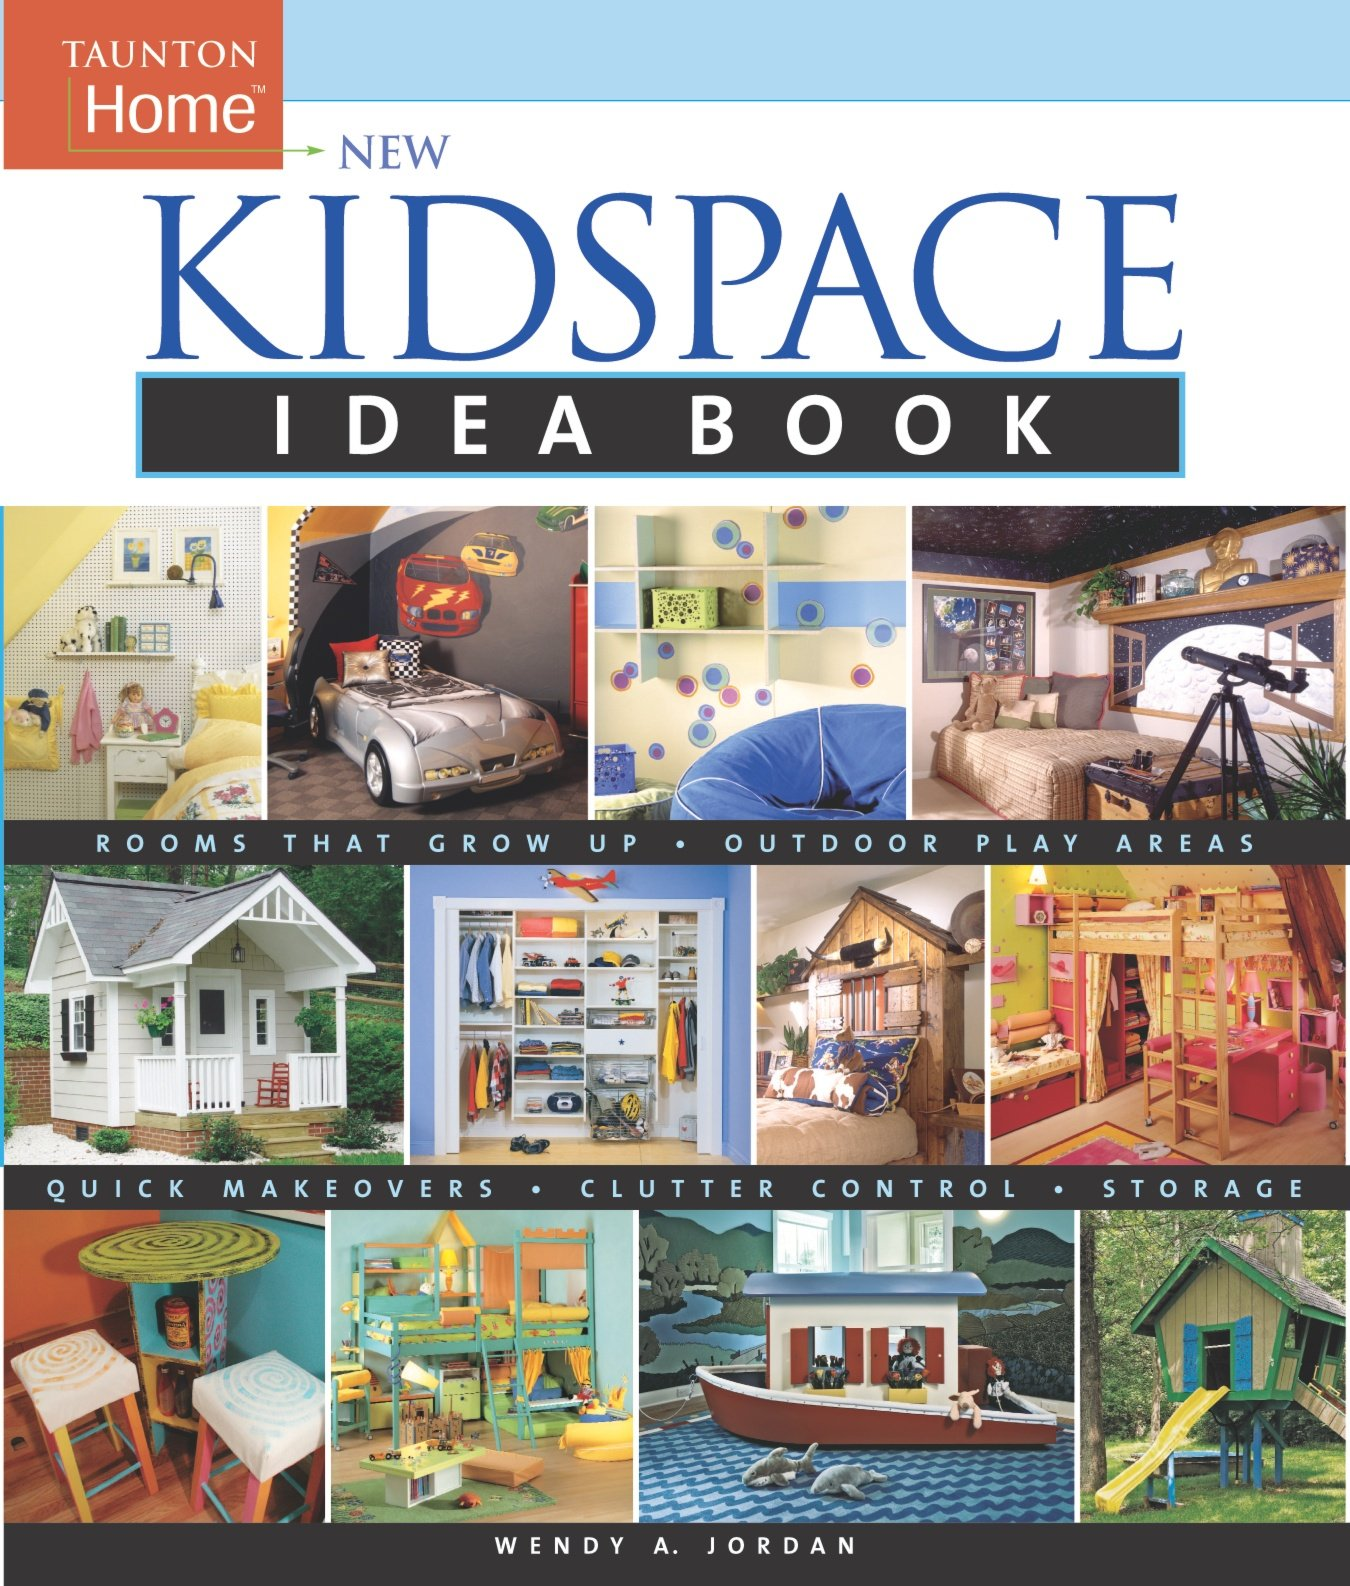 New Kidspace Idea Book: Rooms That Grow Up * Quick Makeovers* Outdoor Pl (Taunton Home Idea Books)